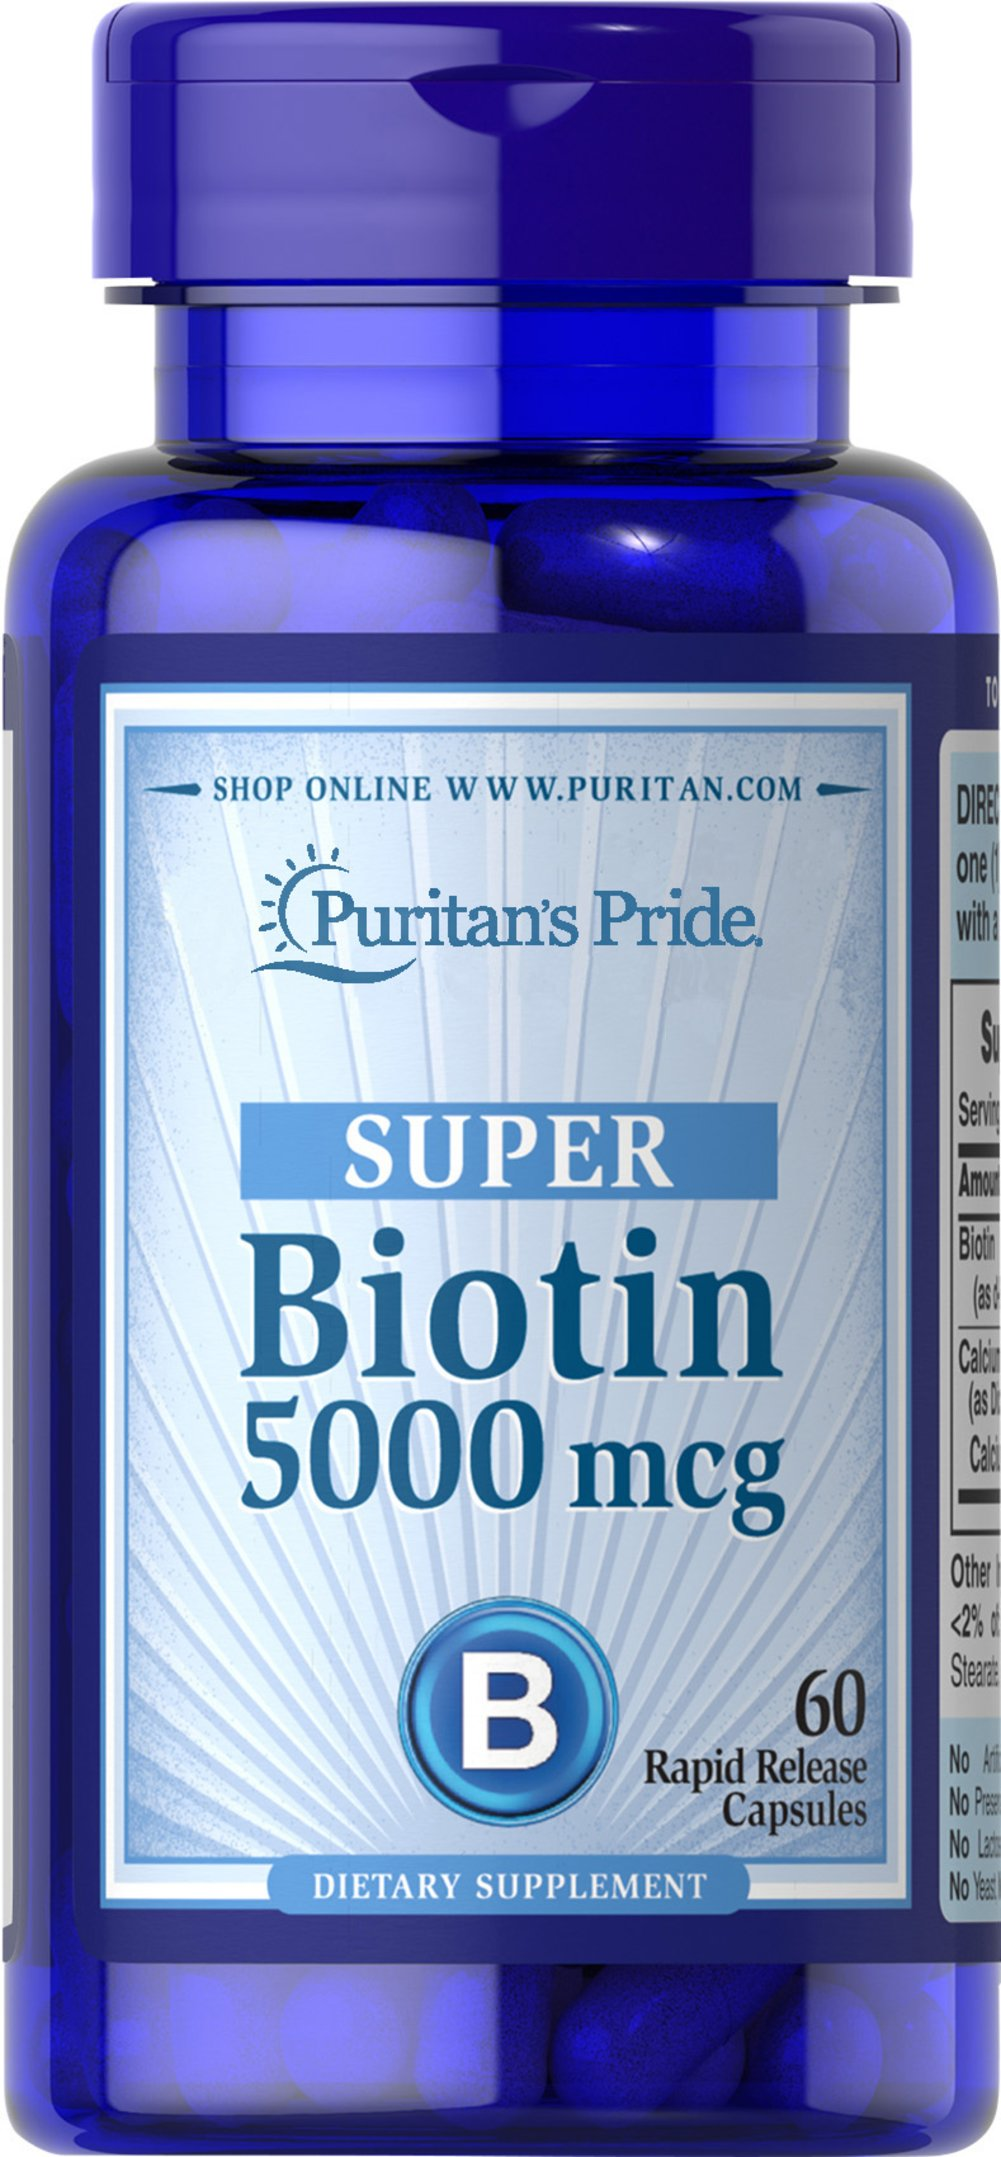 Biotin 5000 mcg <p>Supports Skin & Hair Health**</p><p>Found in foods such as oatmeal and soy, Biotin, a water-soluble B vitamin, assists in energy metabolism in cells.** Biotin helps to support healthy skin and hair.**</p> 60 Capsules 5000 mcg $8.29